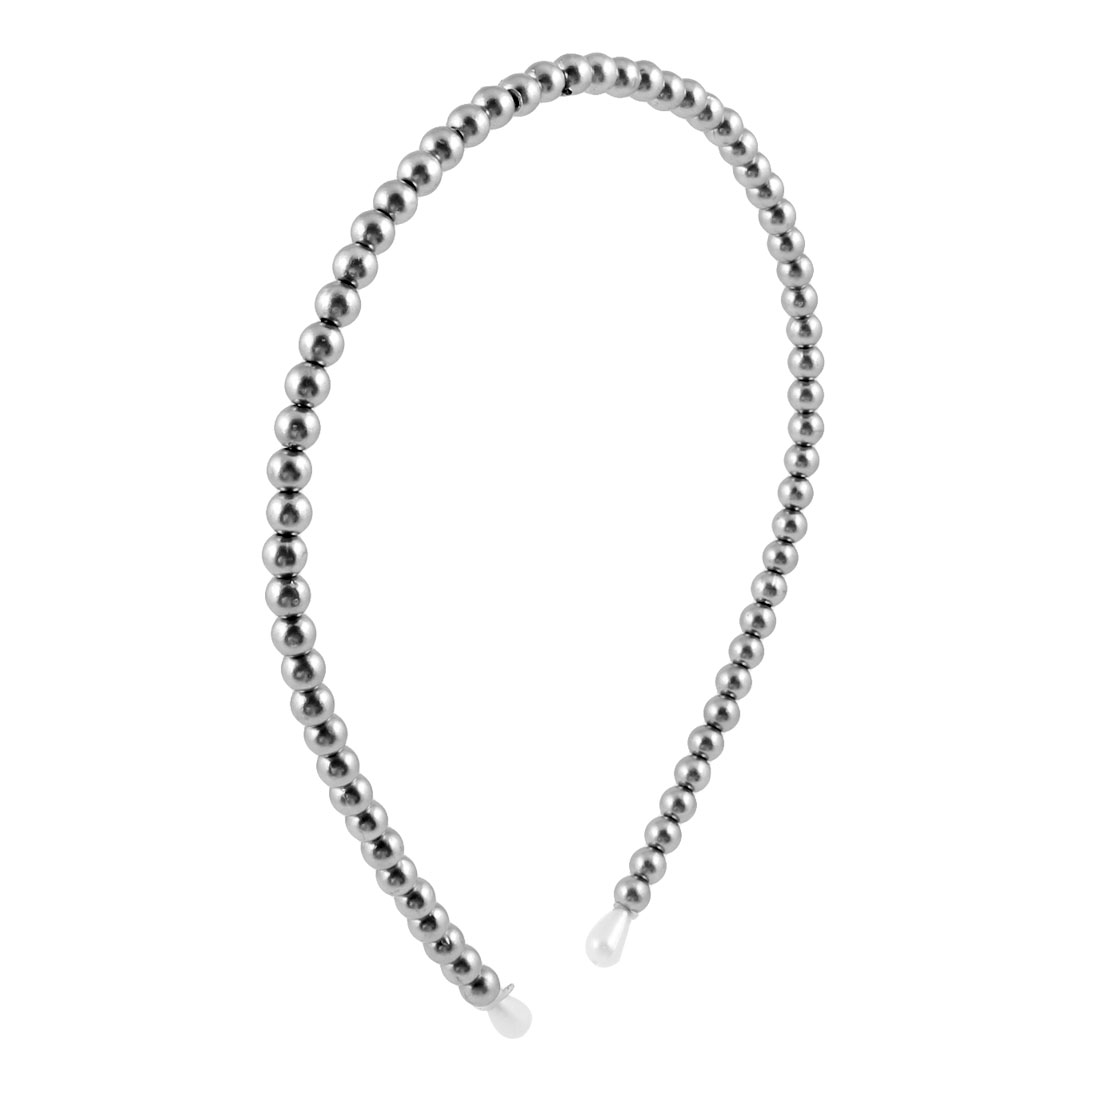 New Women Full Simulation Pearl Bead Headband Hair Band Silver Tone